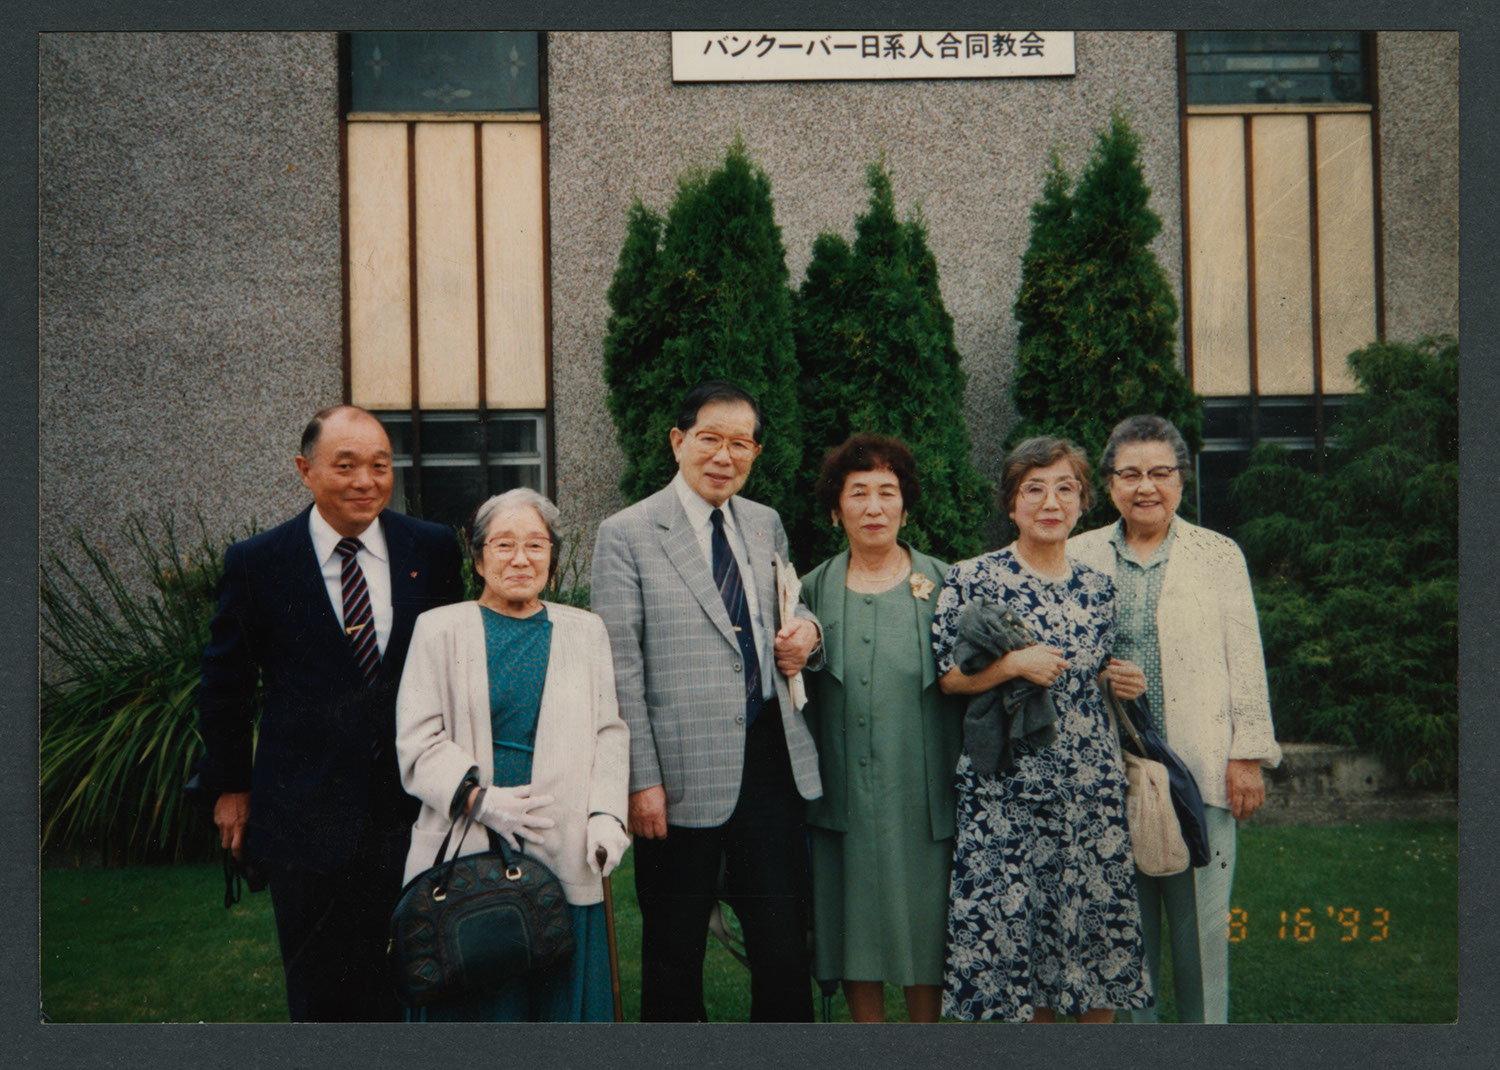 Six members of the Japanese-speaking congregation